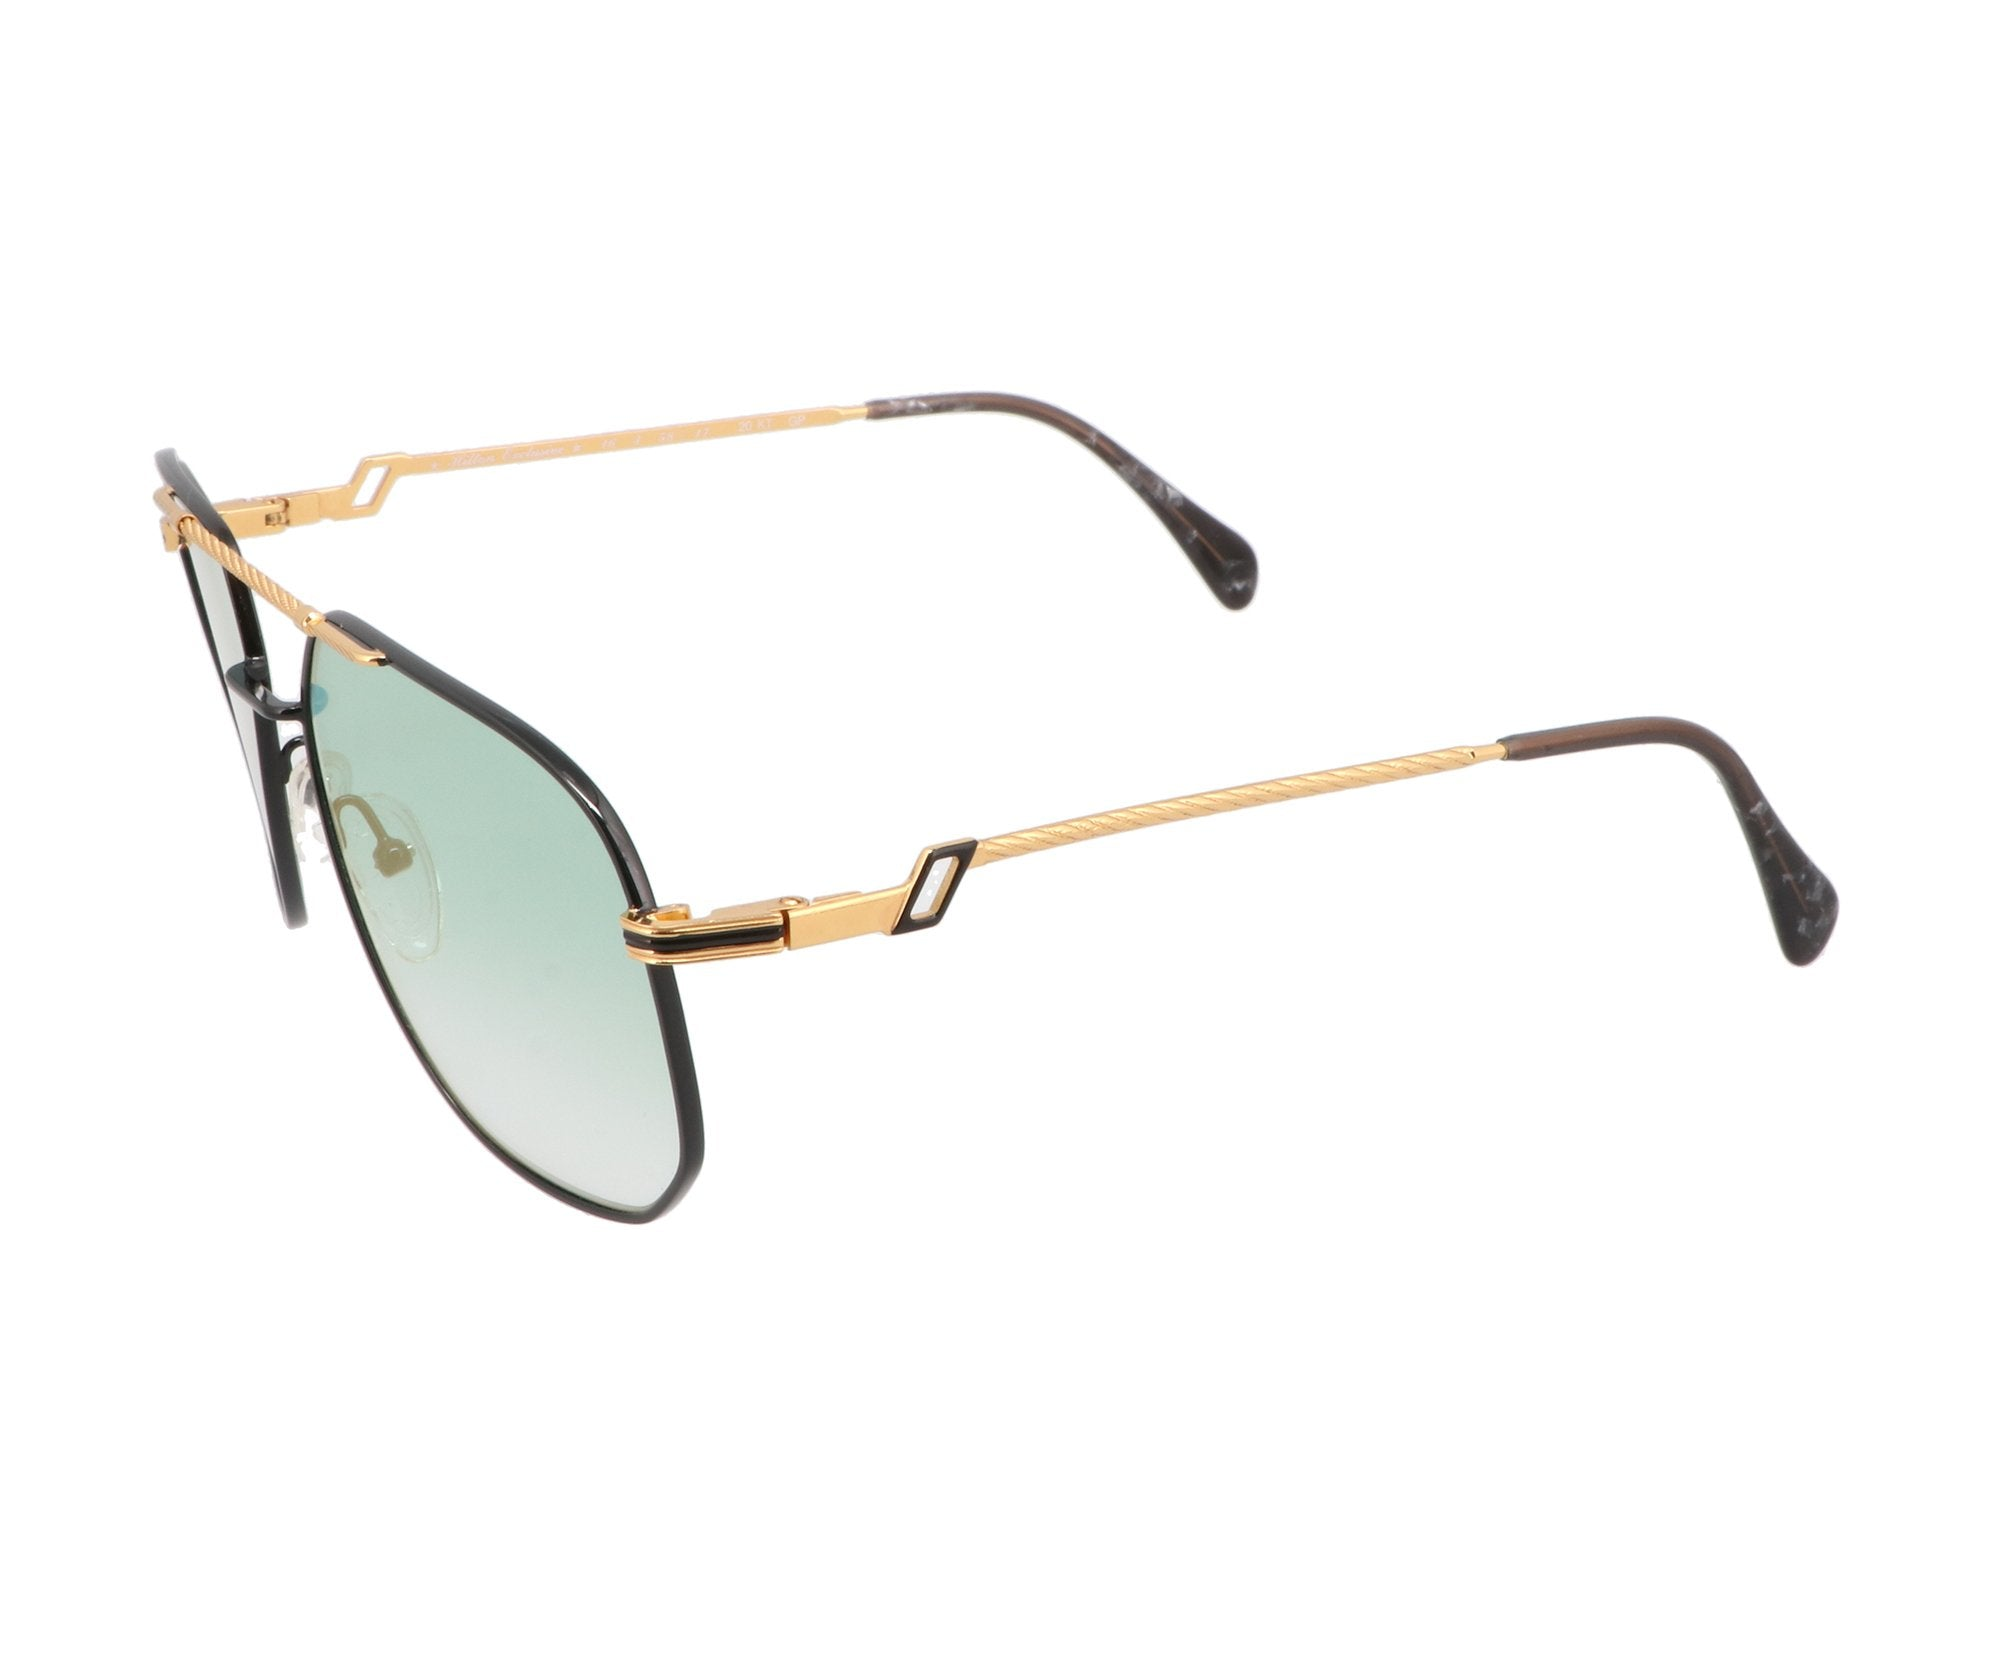 Hilton Exclusive14 1 Gold Vintage Sunglasses Aviator For Men and Women